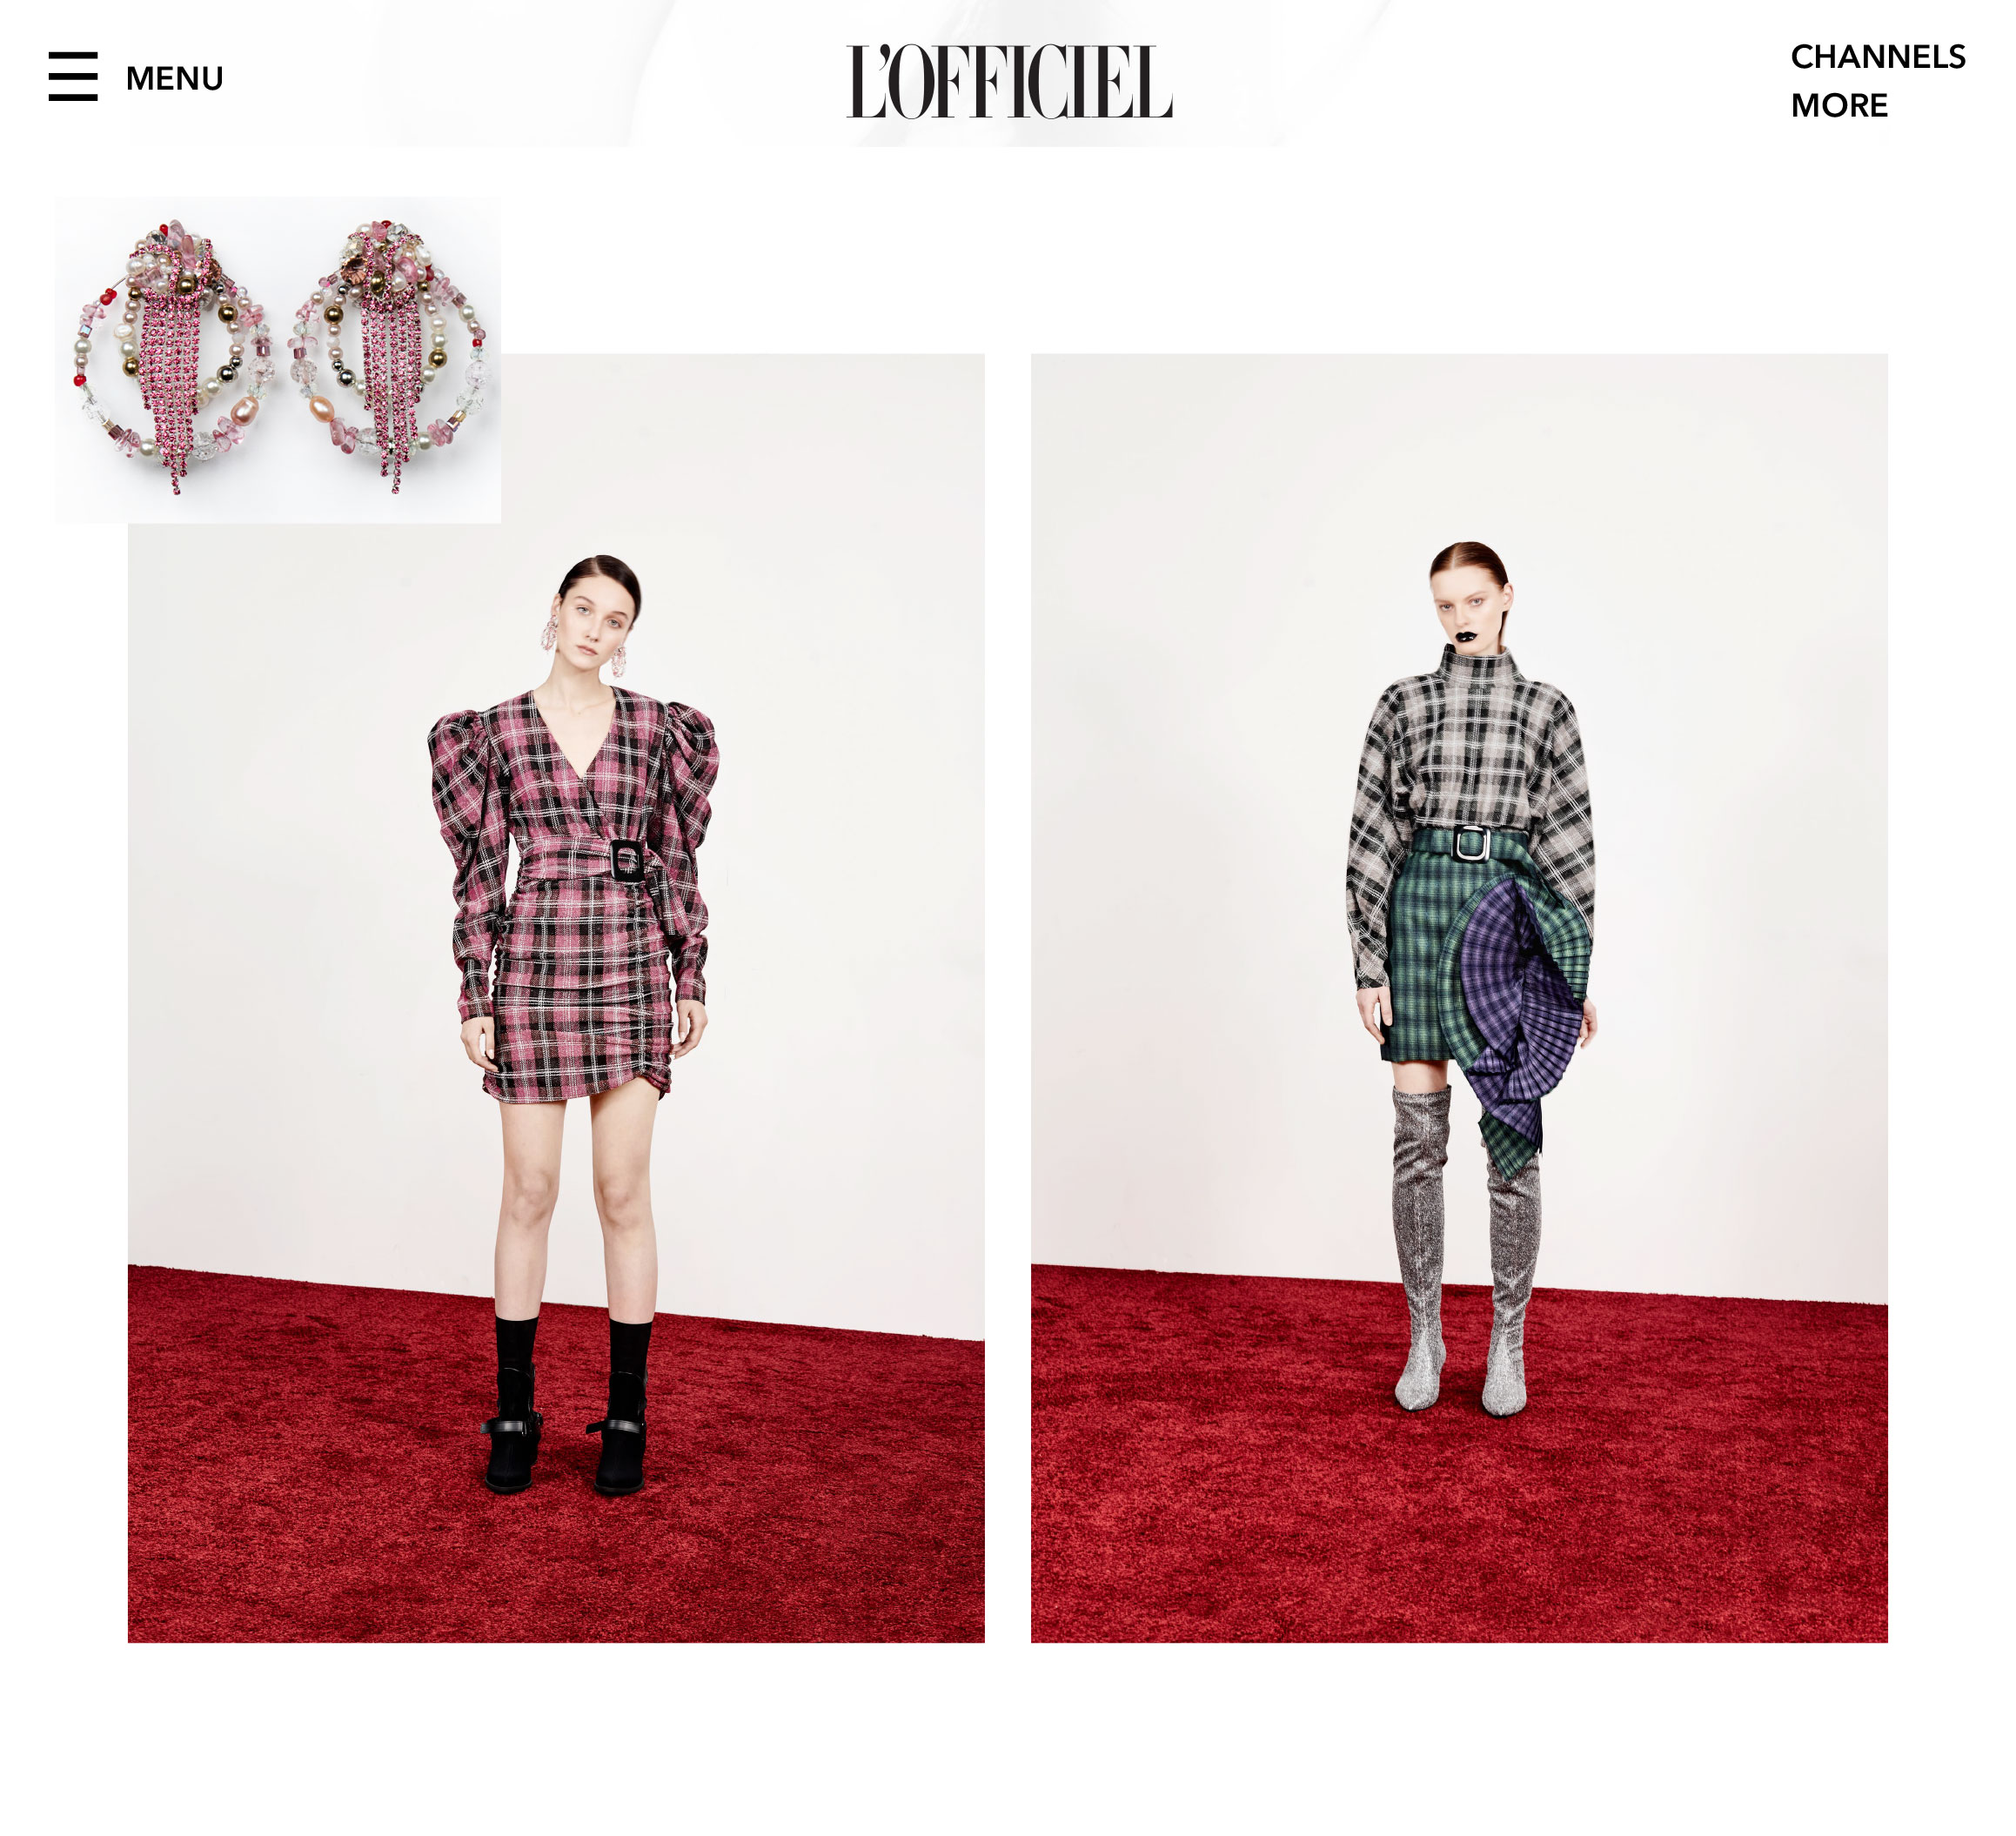 L'officiel-Art-In-Movement-Dzyak--Lada-Legina-11.jpg